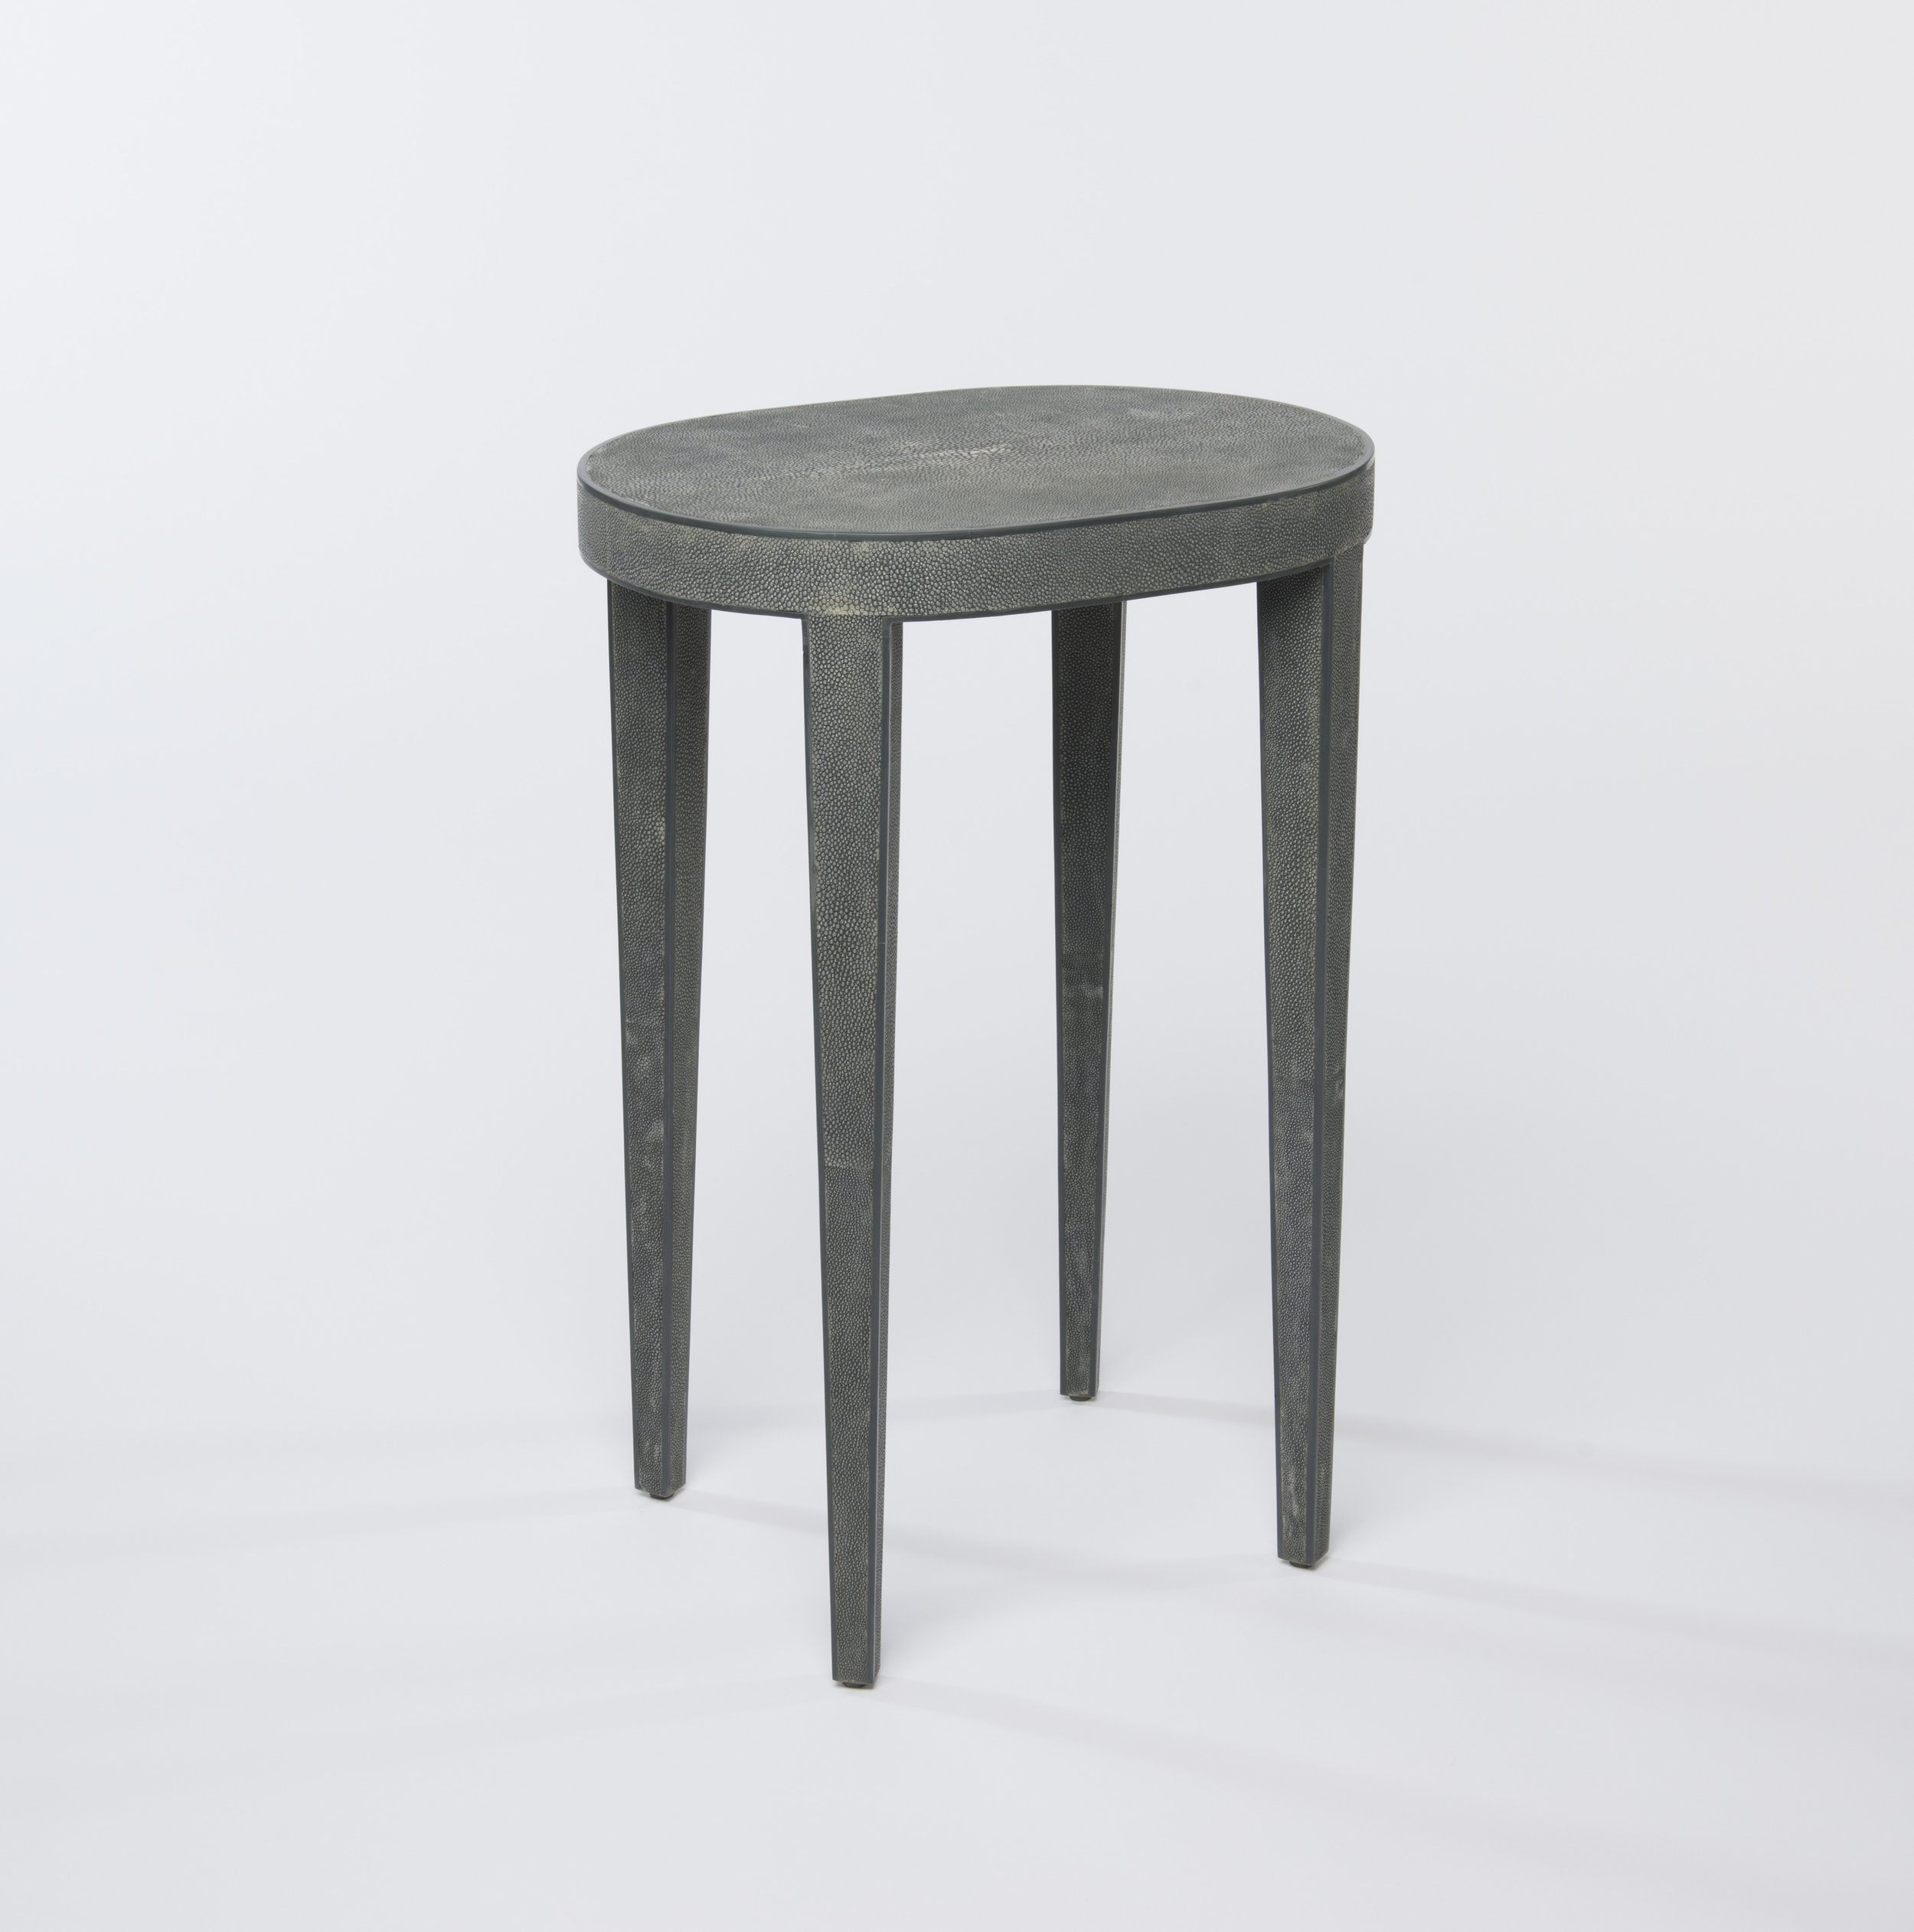 sadie table fog shagreen-003.jpg